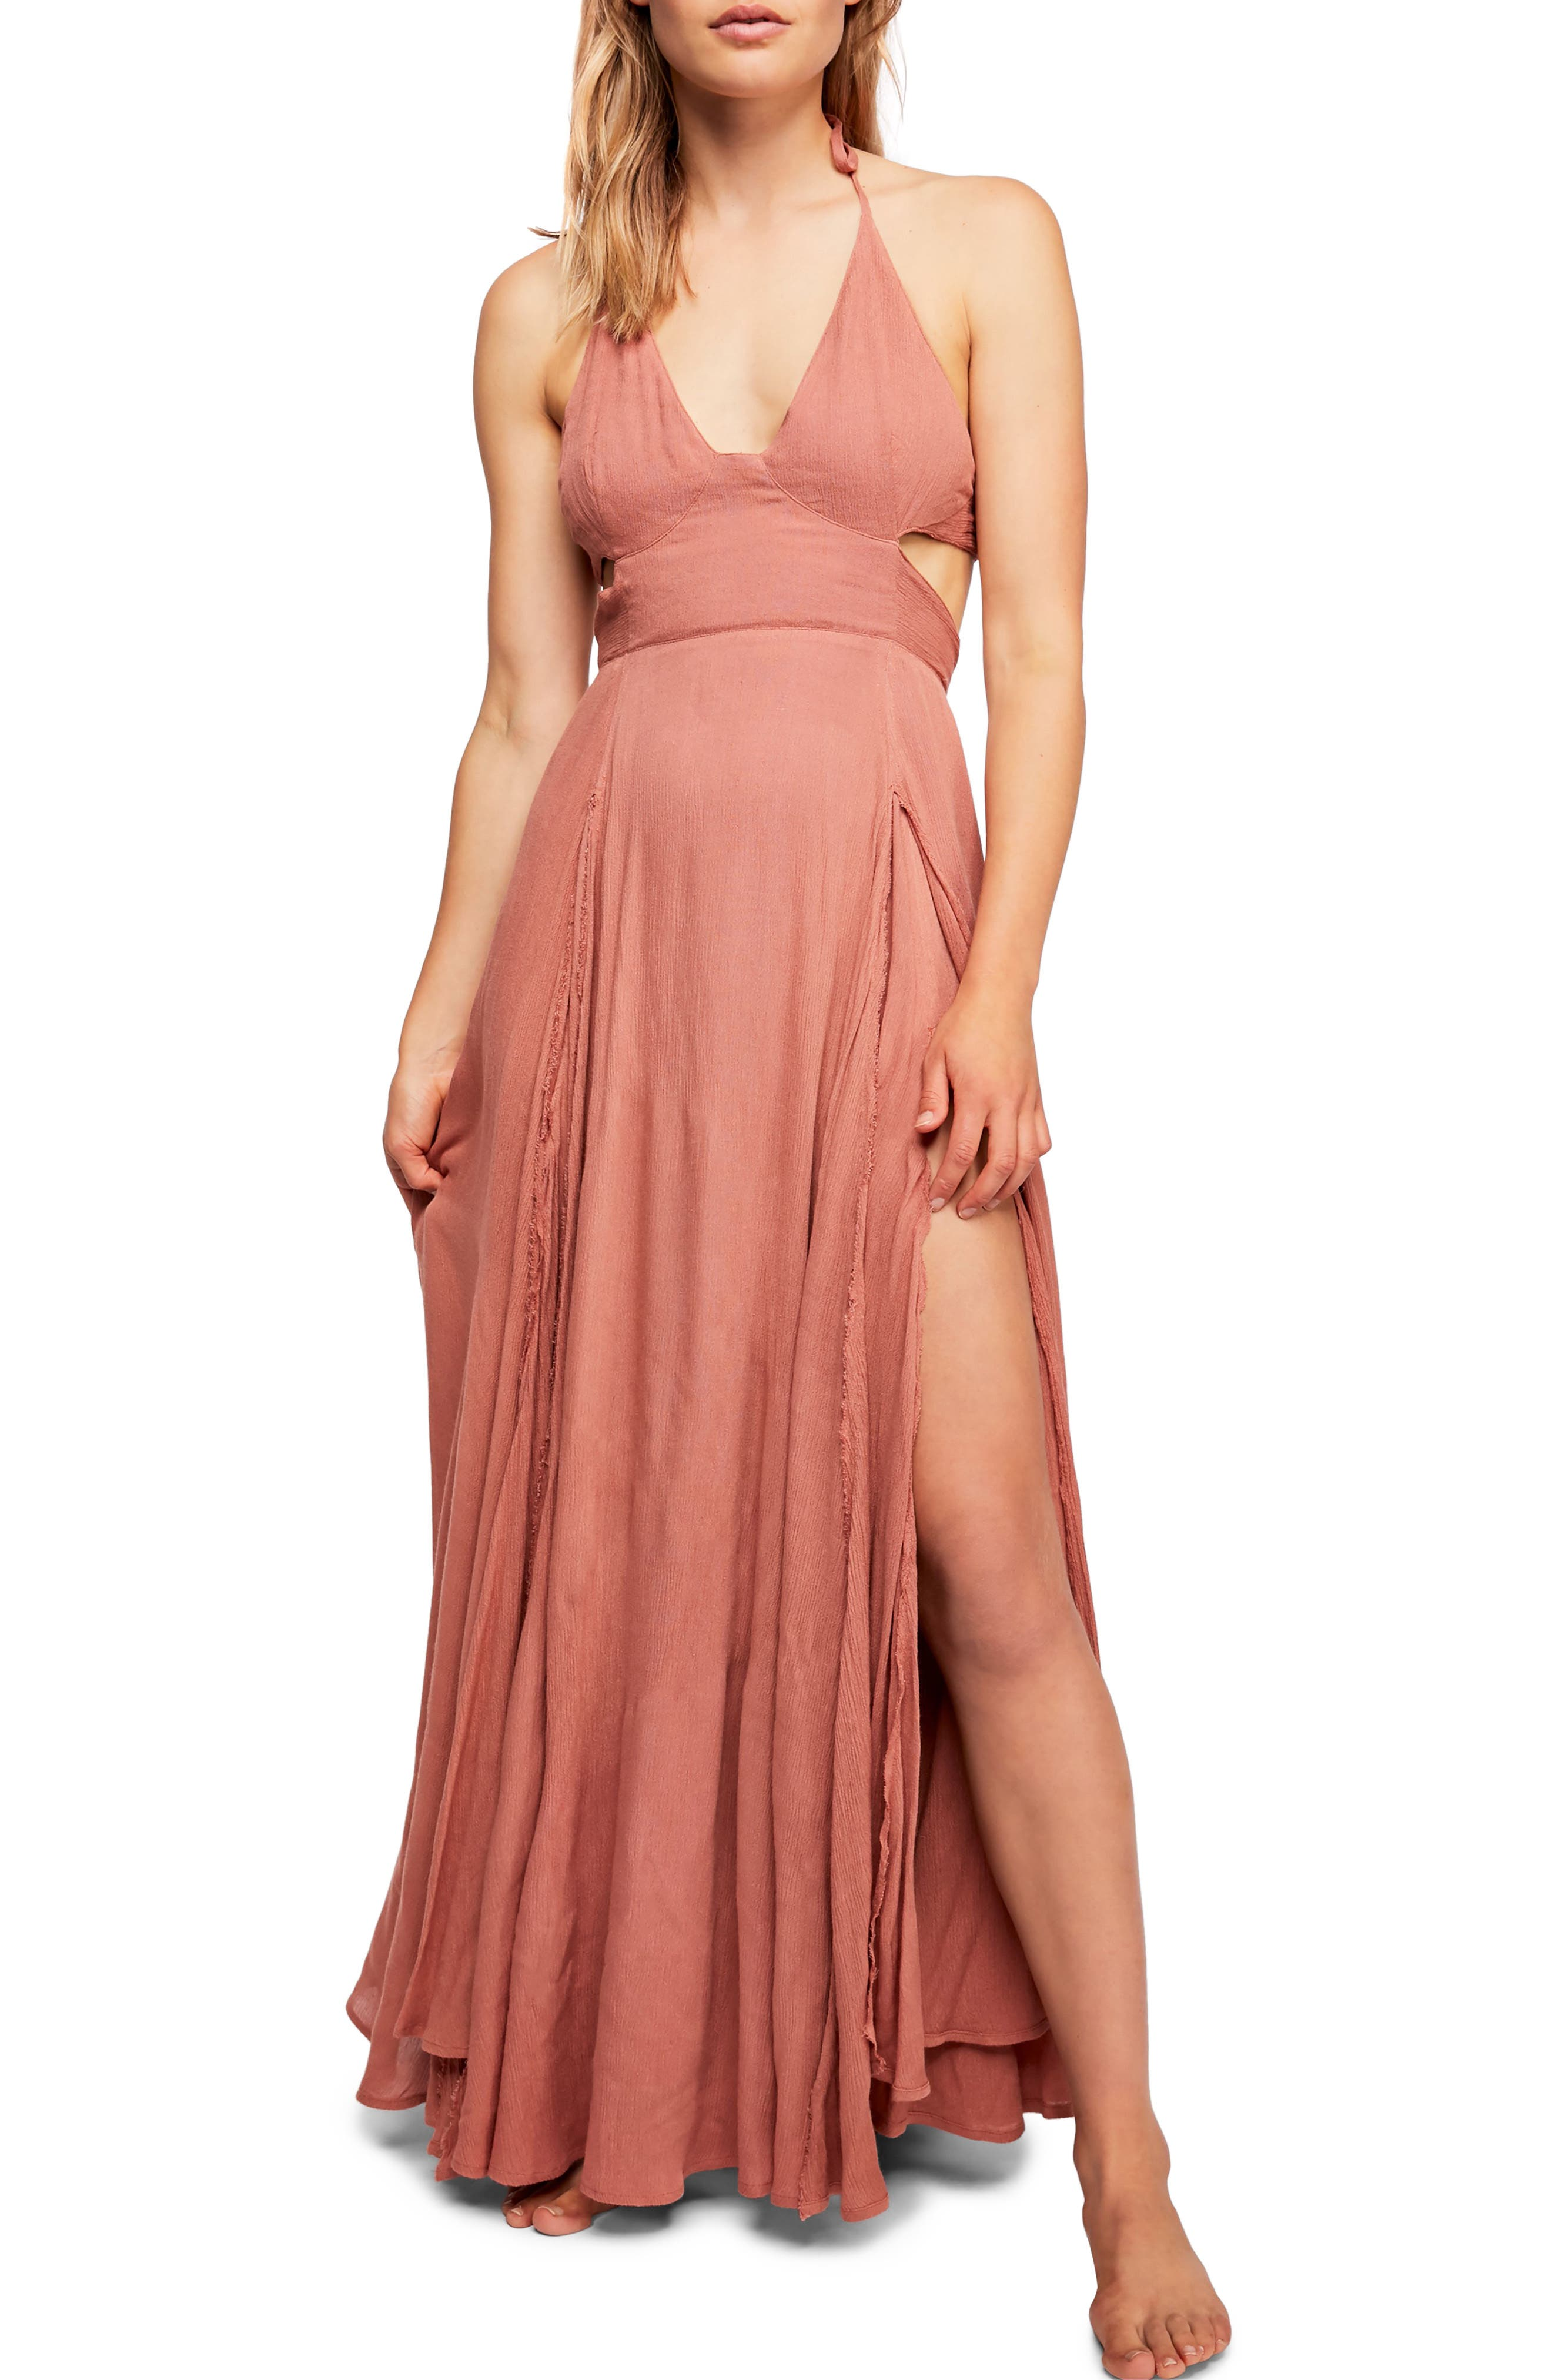 Endless Summer By Free People Lillie Maxi Dress, Orange